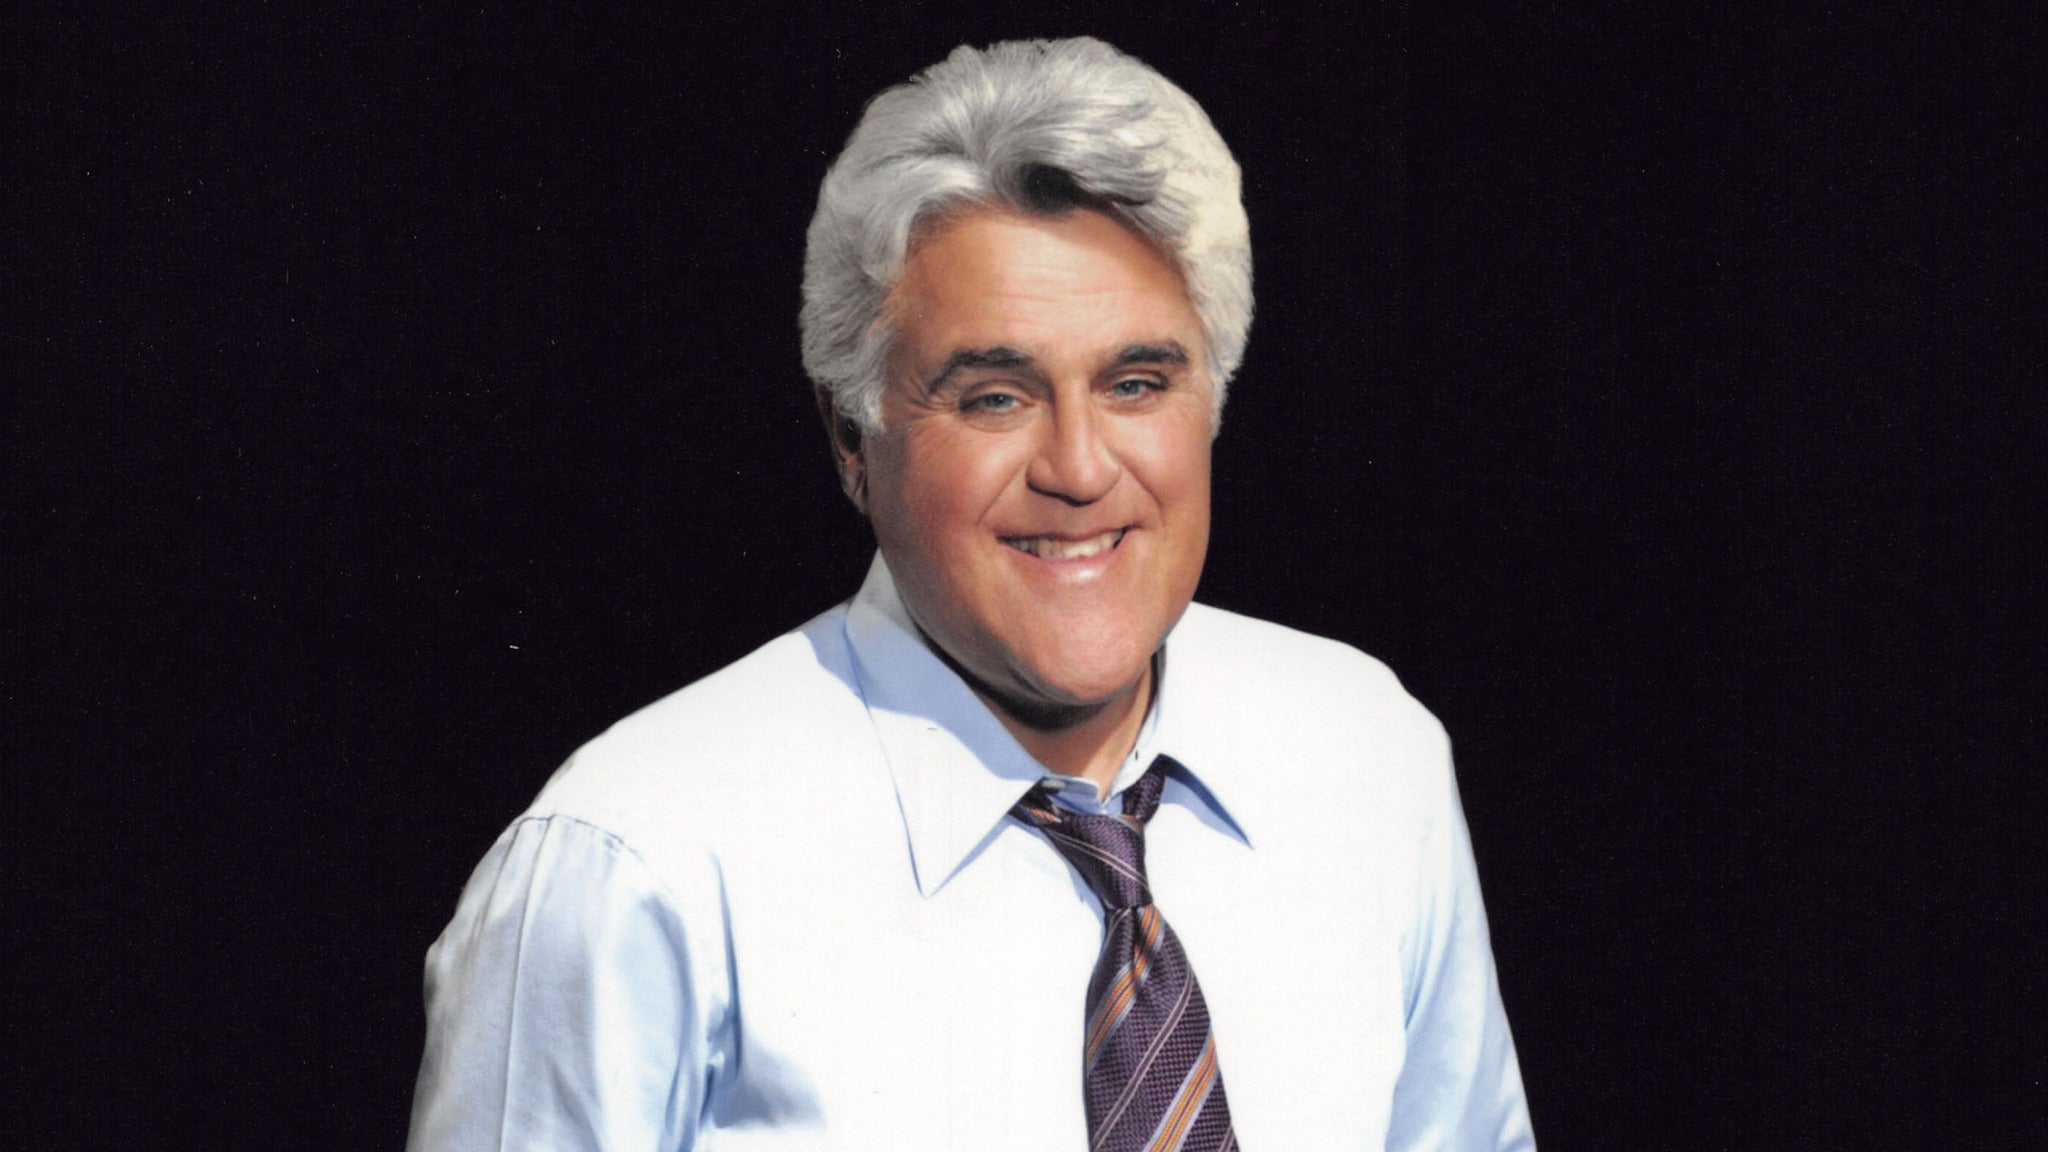 Jay Leno at The Event Center at Hollywood Casino